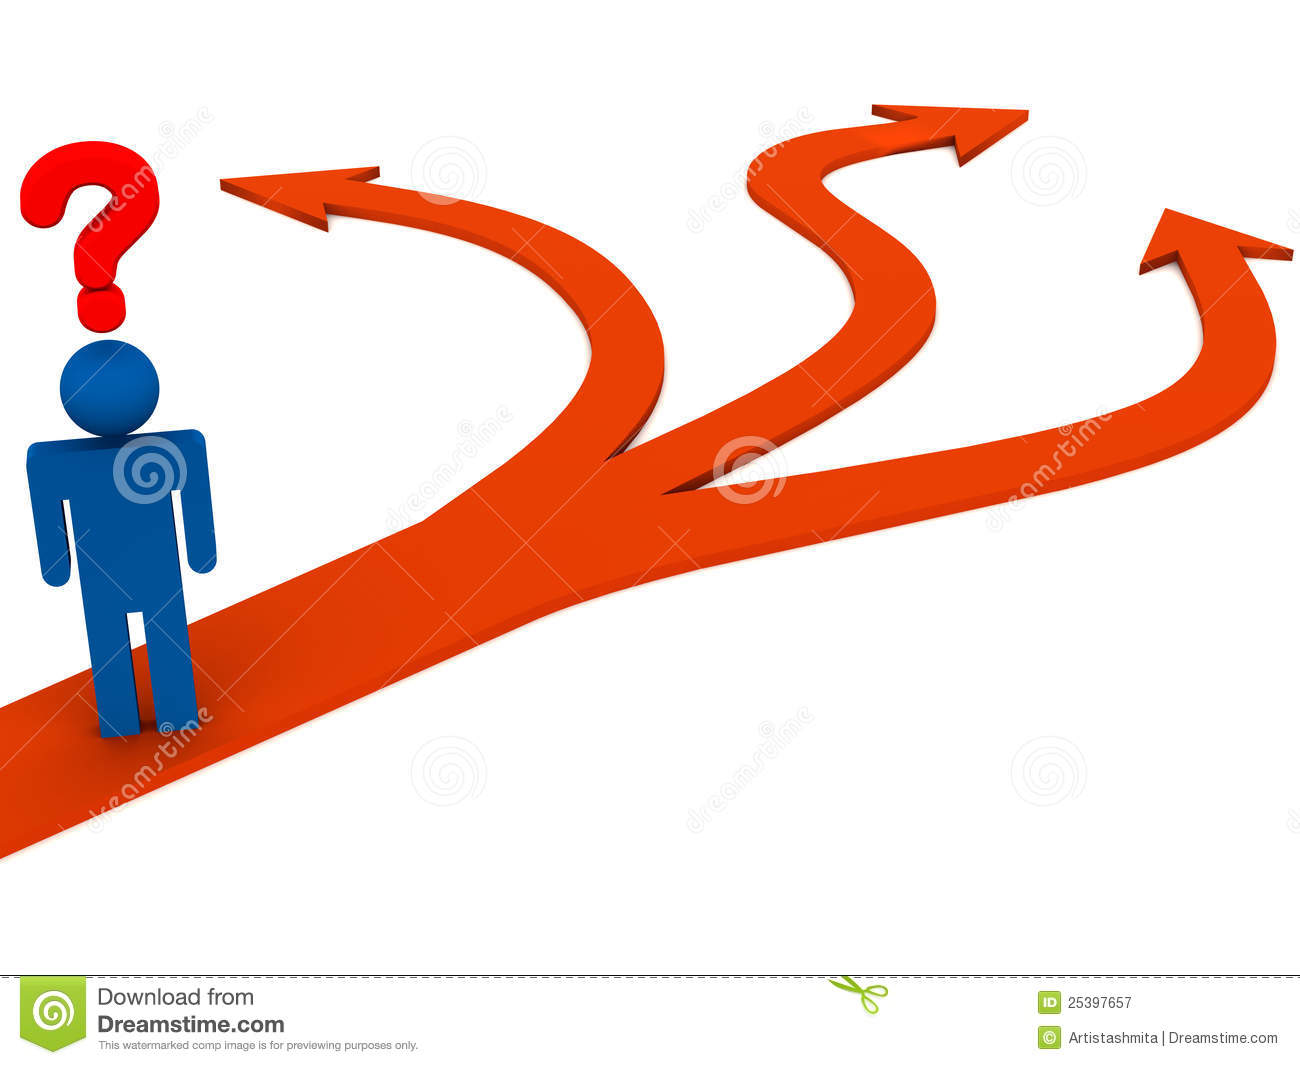 Confusion of path to follow